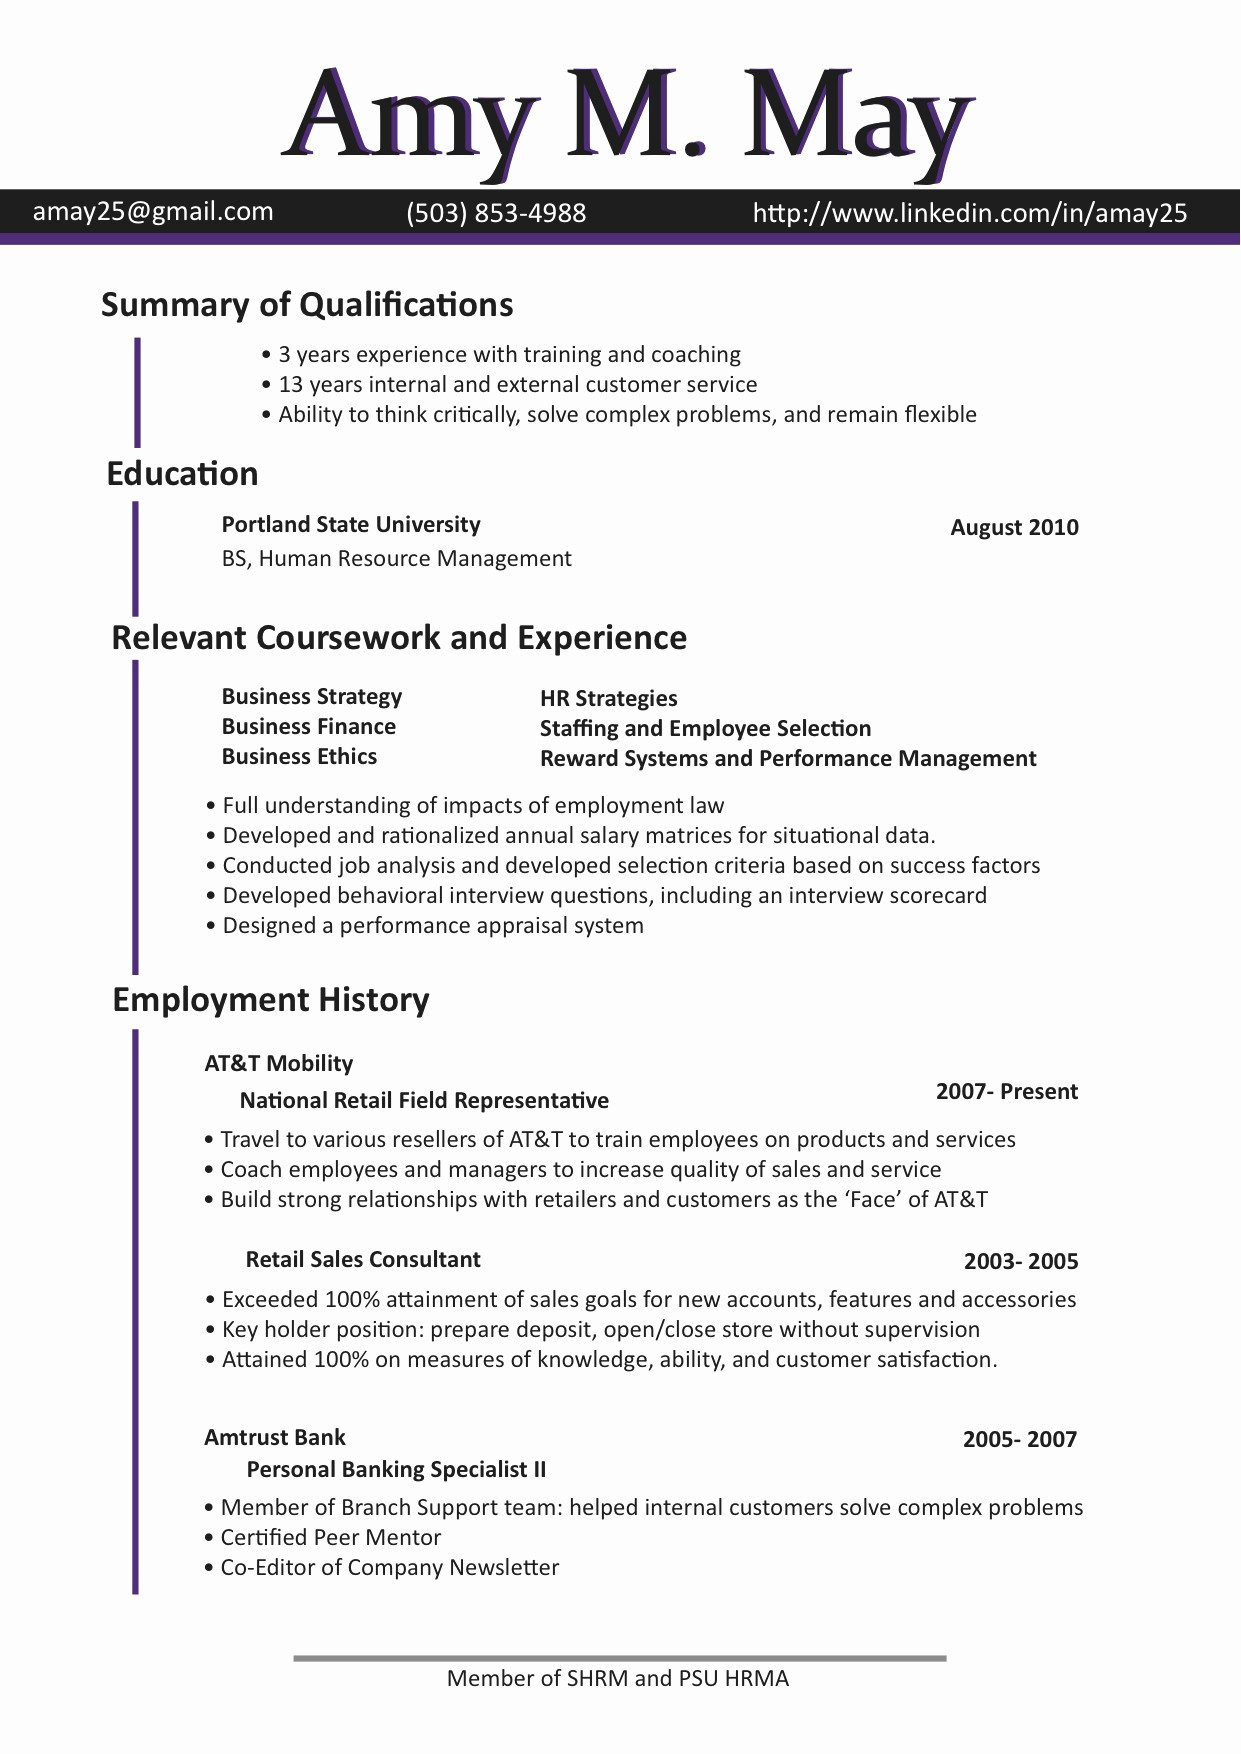 Free Resume Search Sites for Employers - Free Resume Search Sites for Employers Example New Programmer